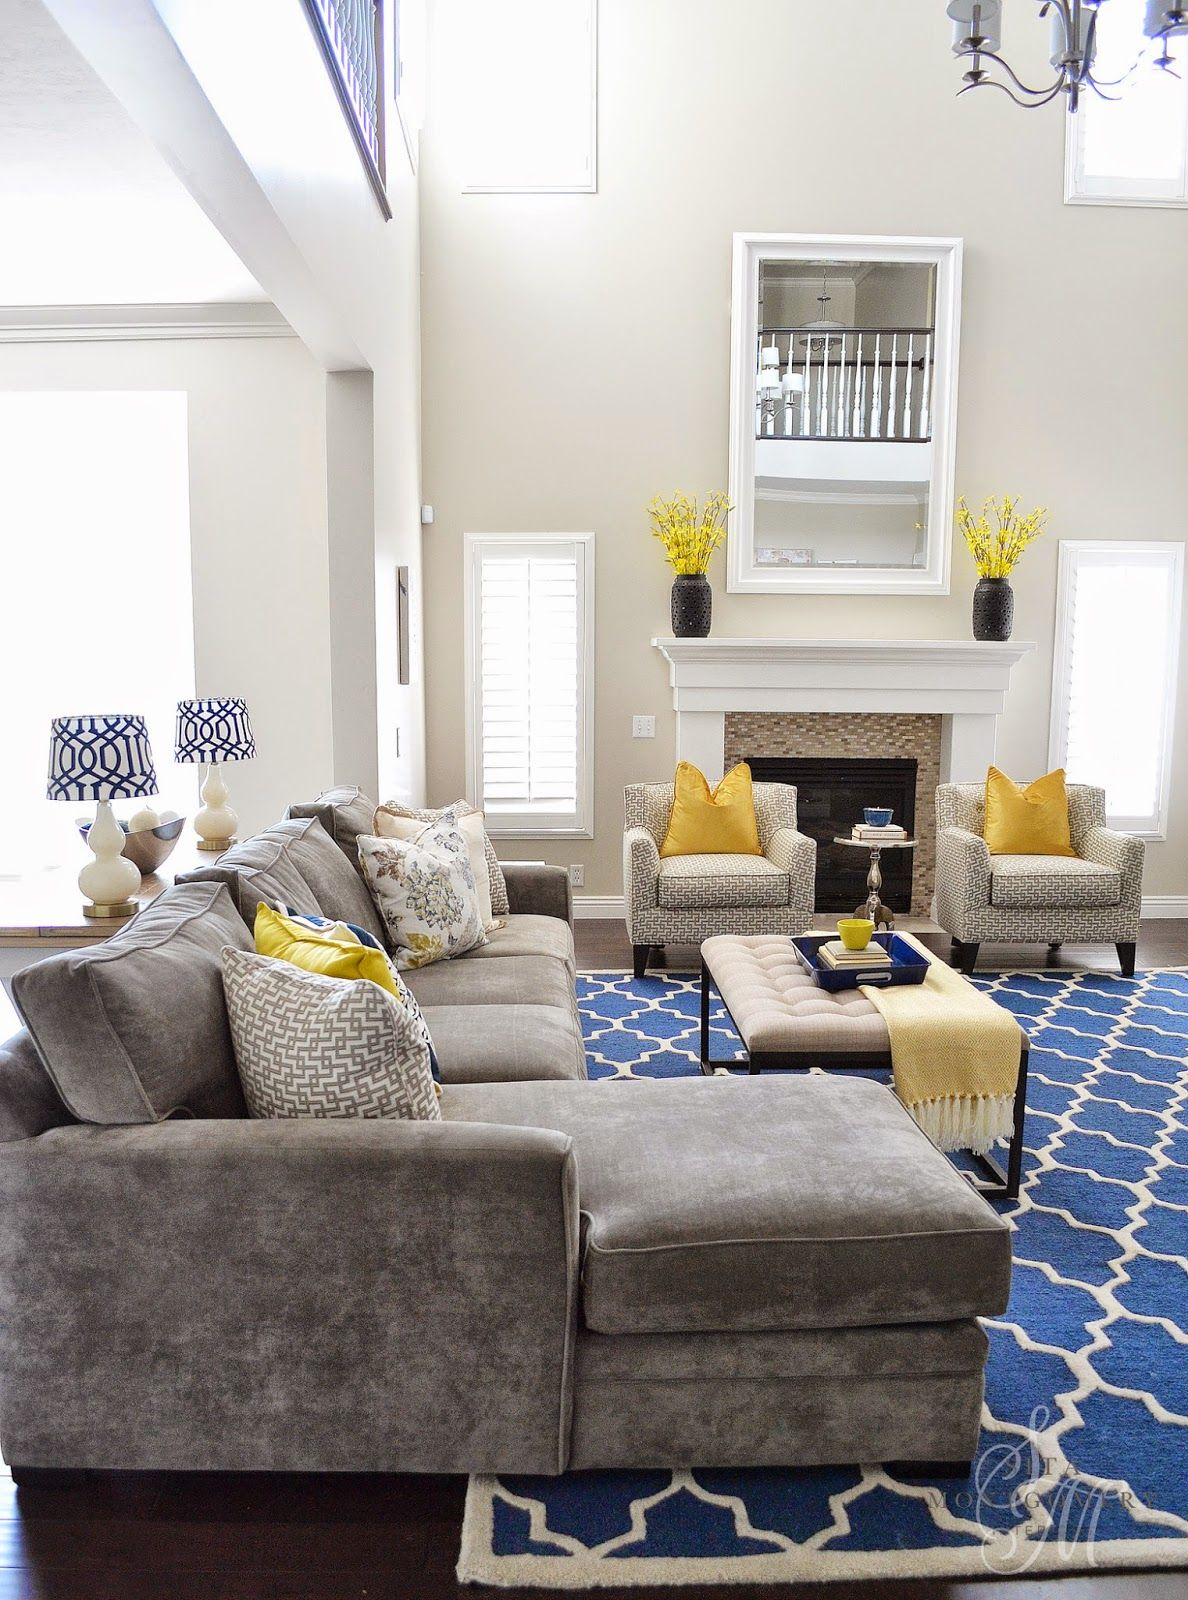 client project reveal the summerwood project renovation rh pinterest com grey blue yellow living room ideas navy blue yellow gray living room